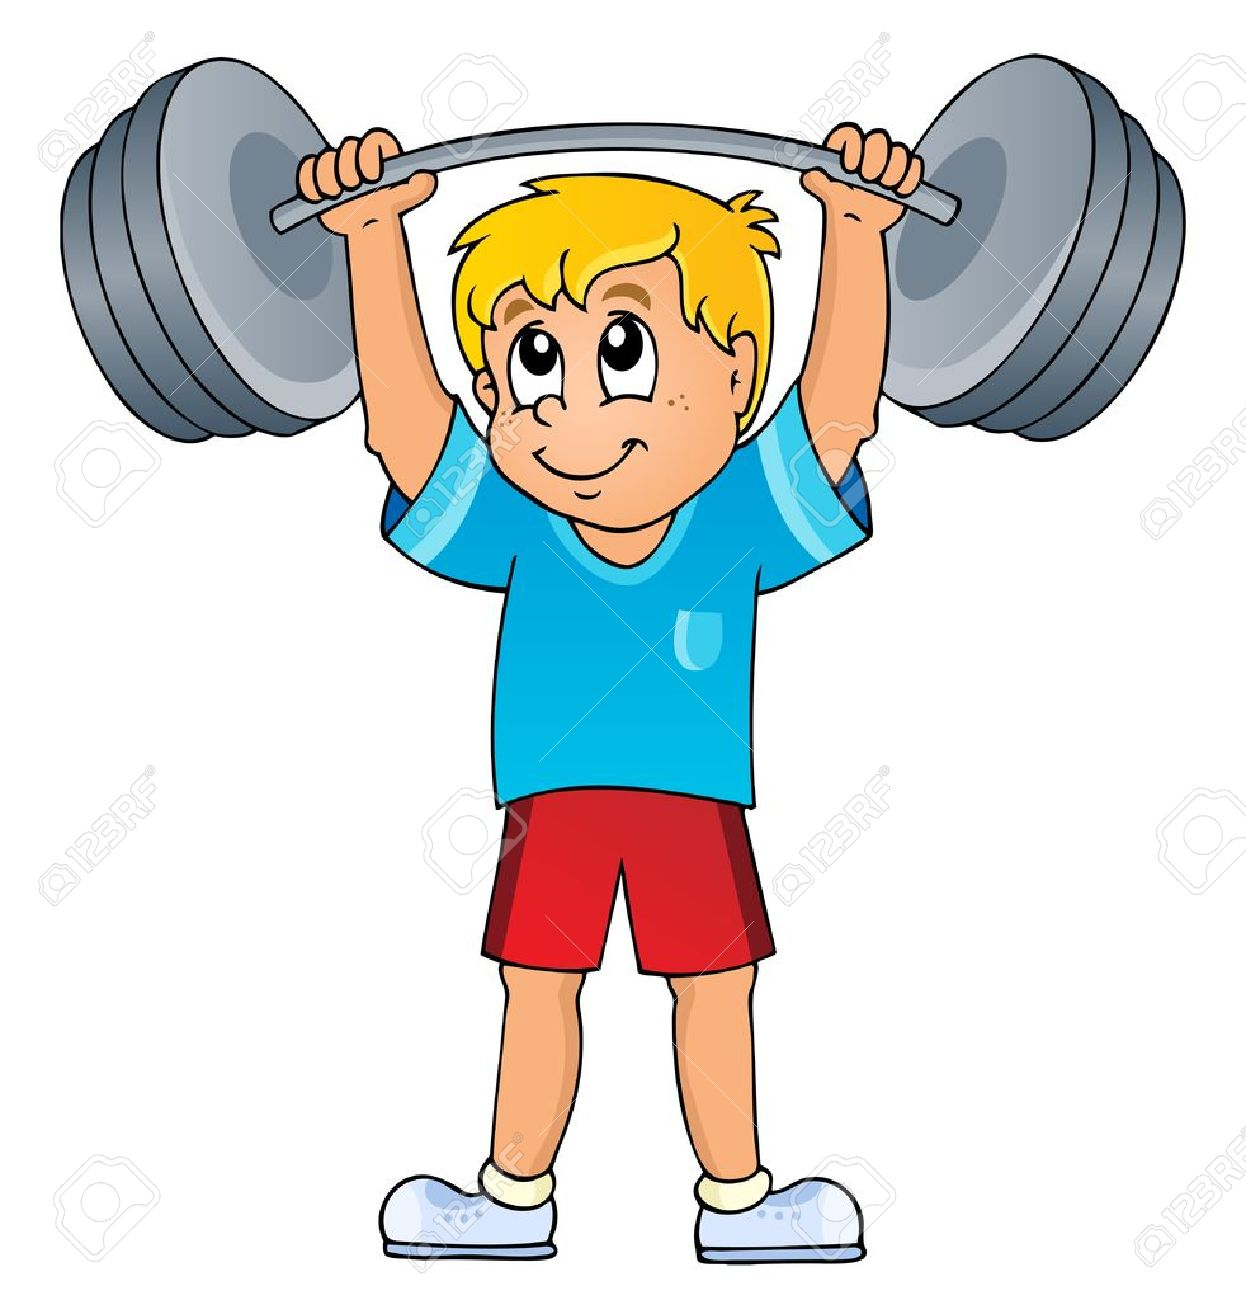 Clipart gym 6 » Clipart Station.